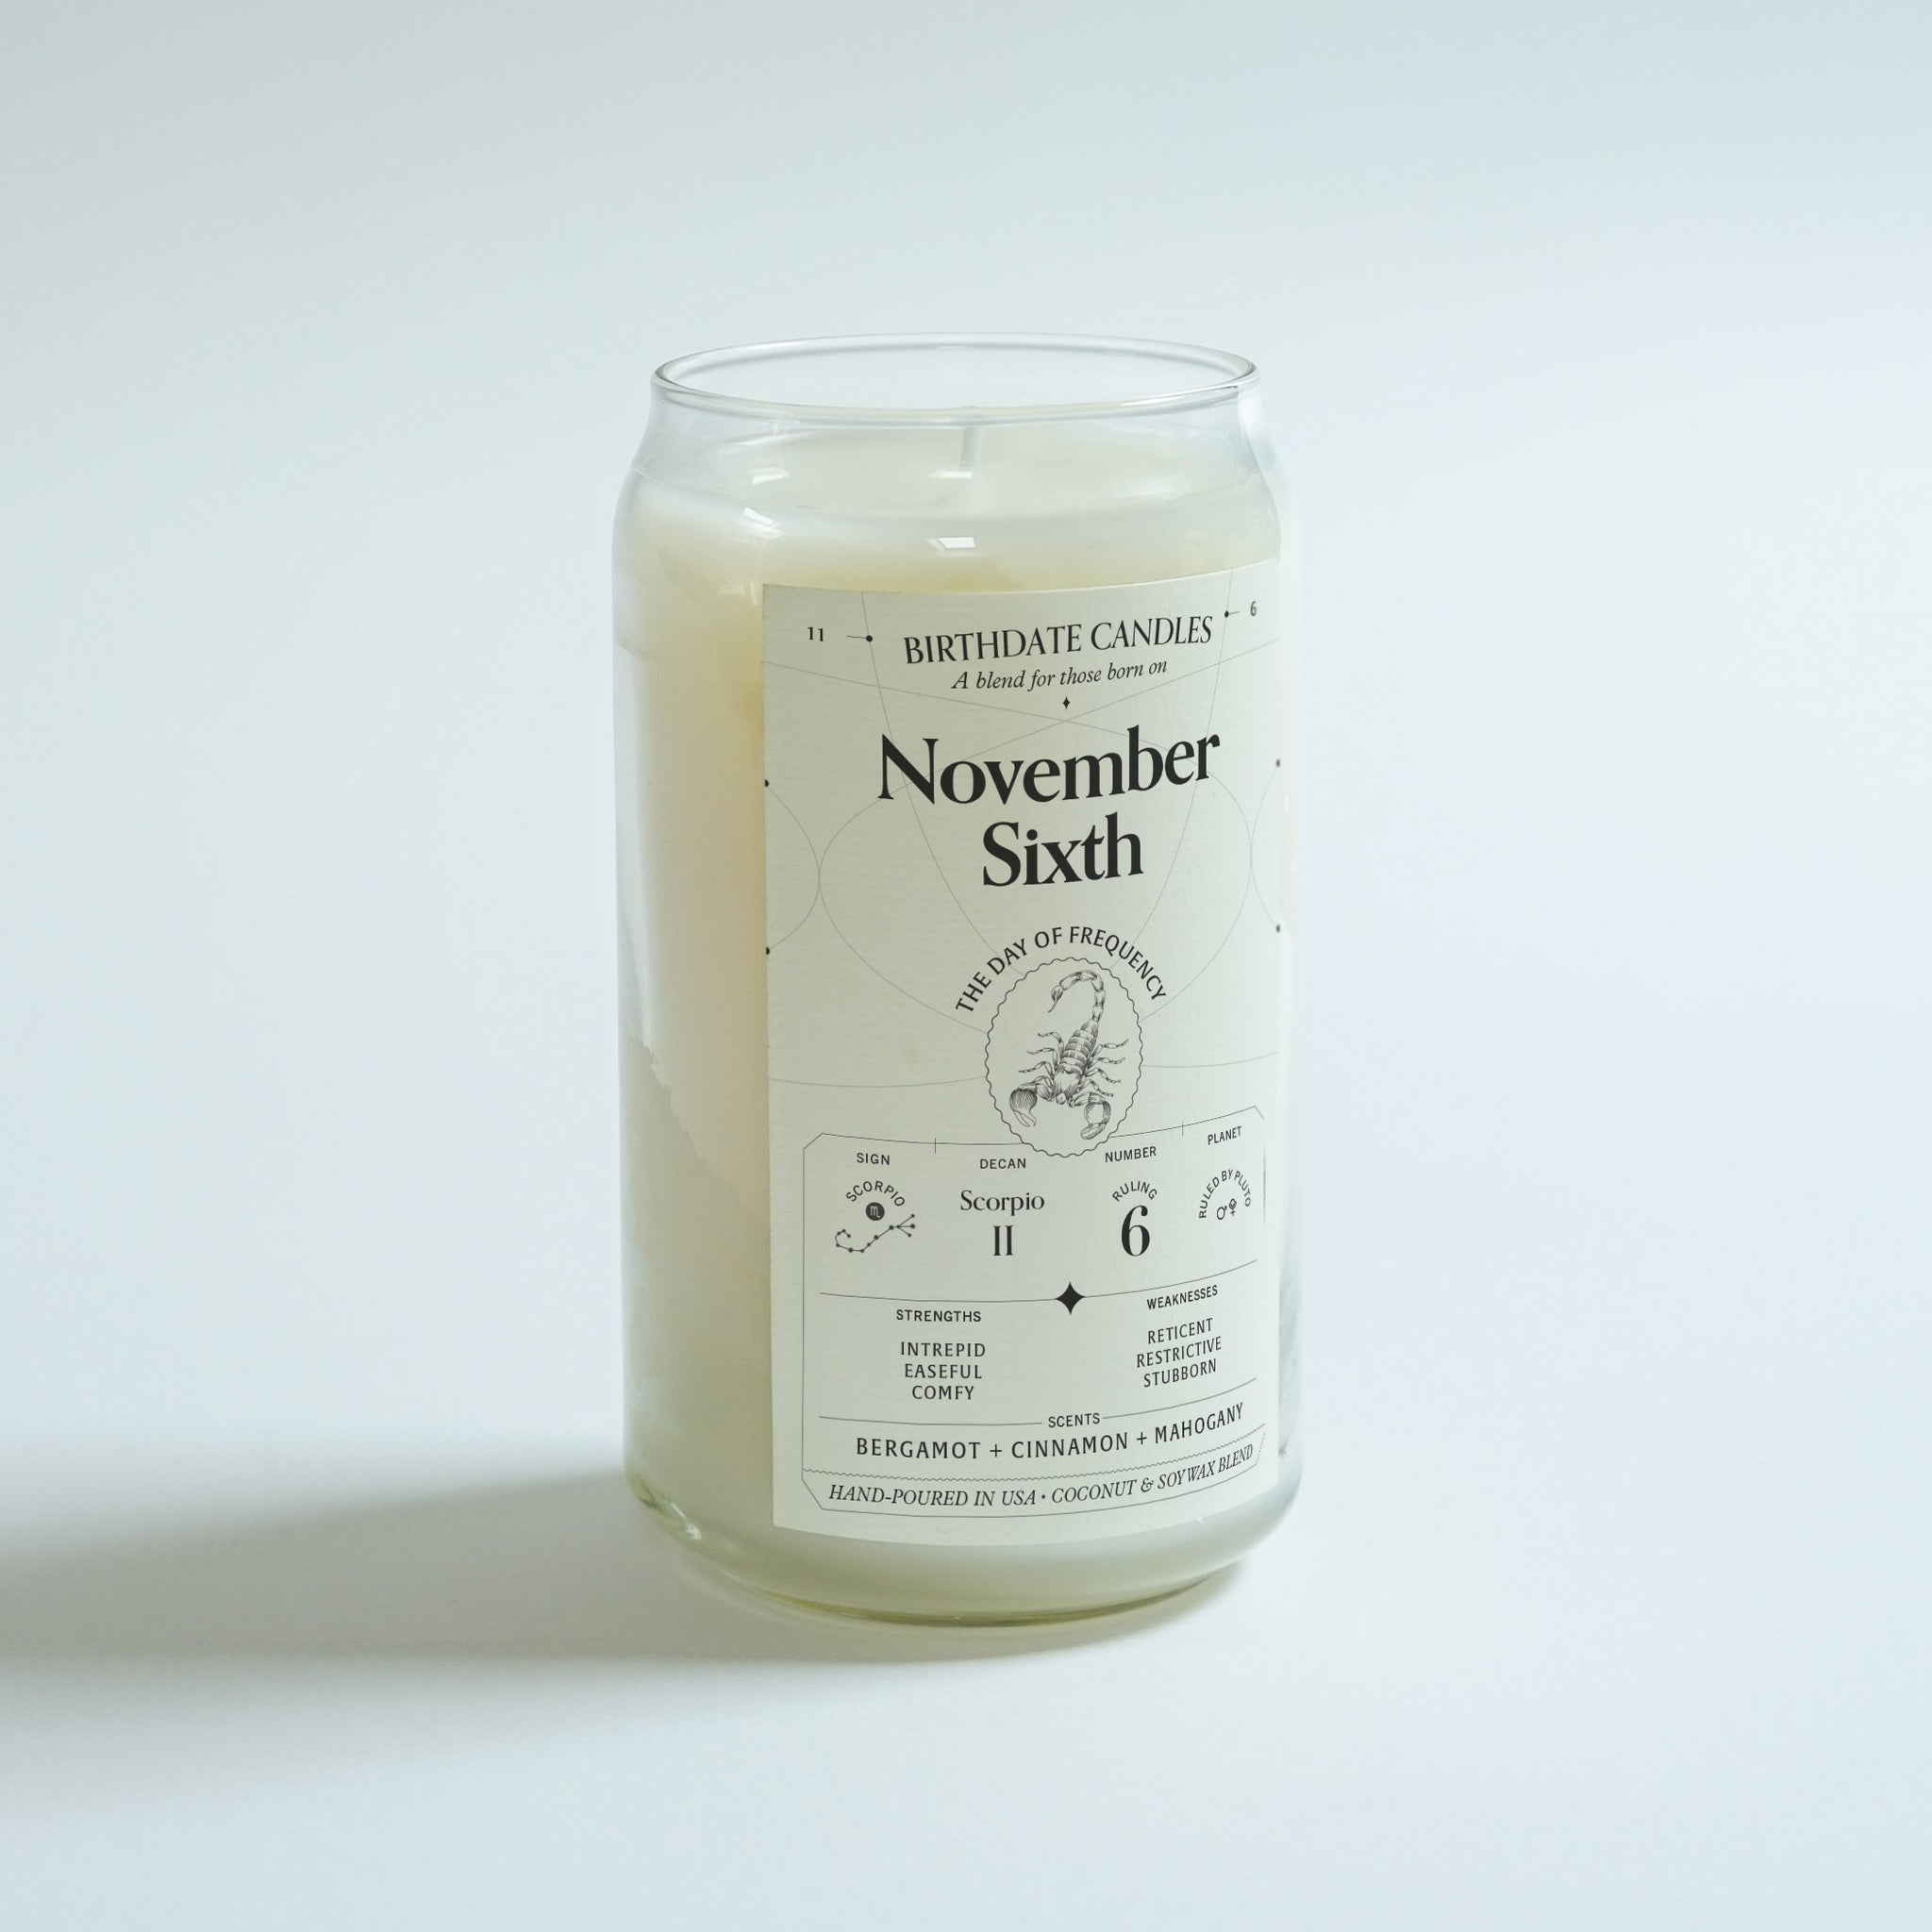 The November Sixth Candle